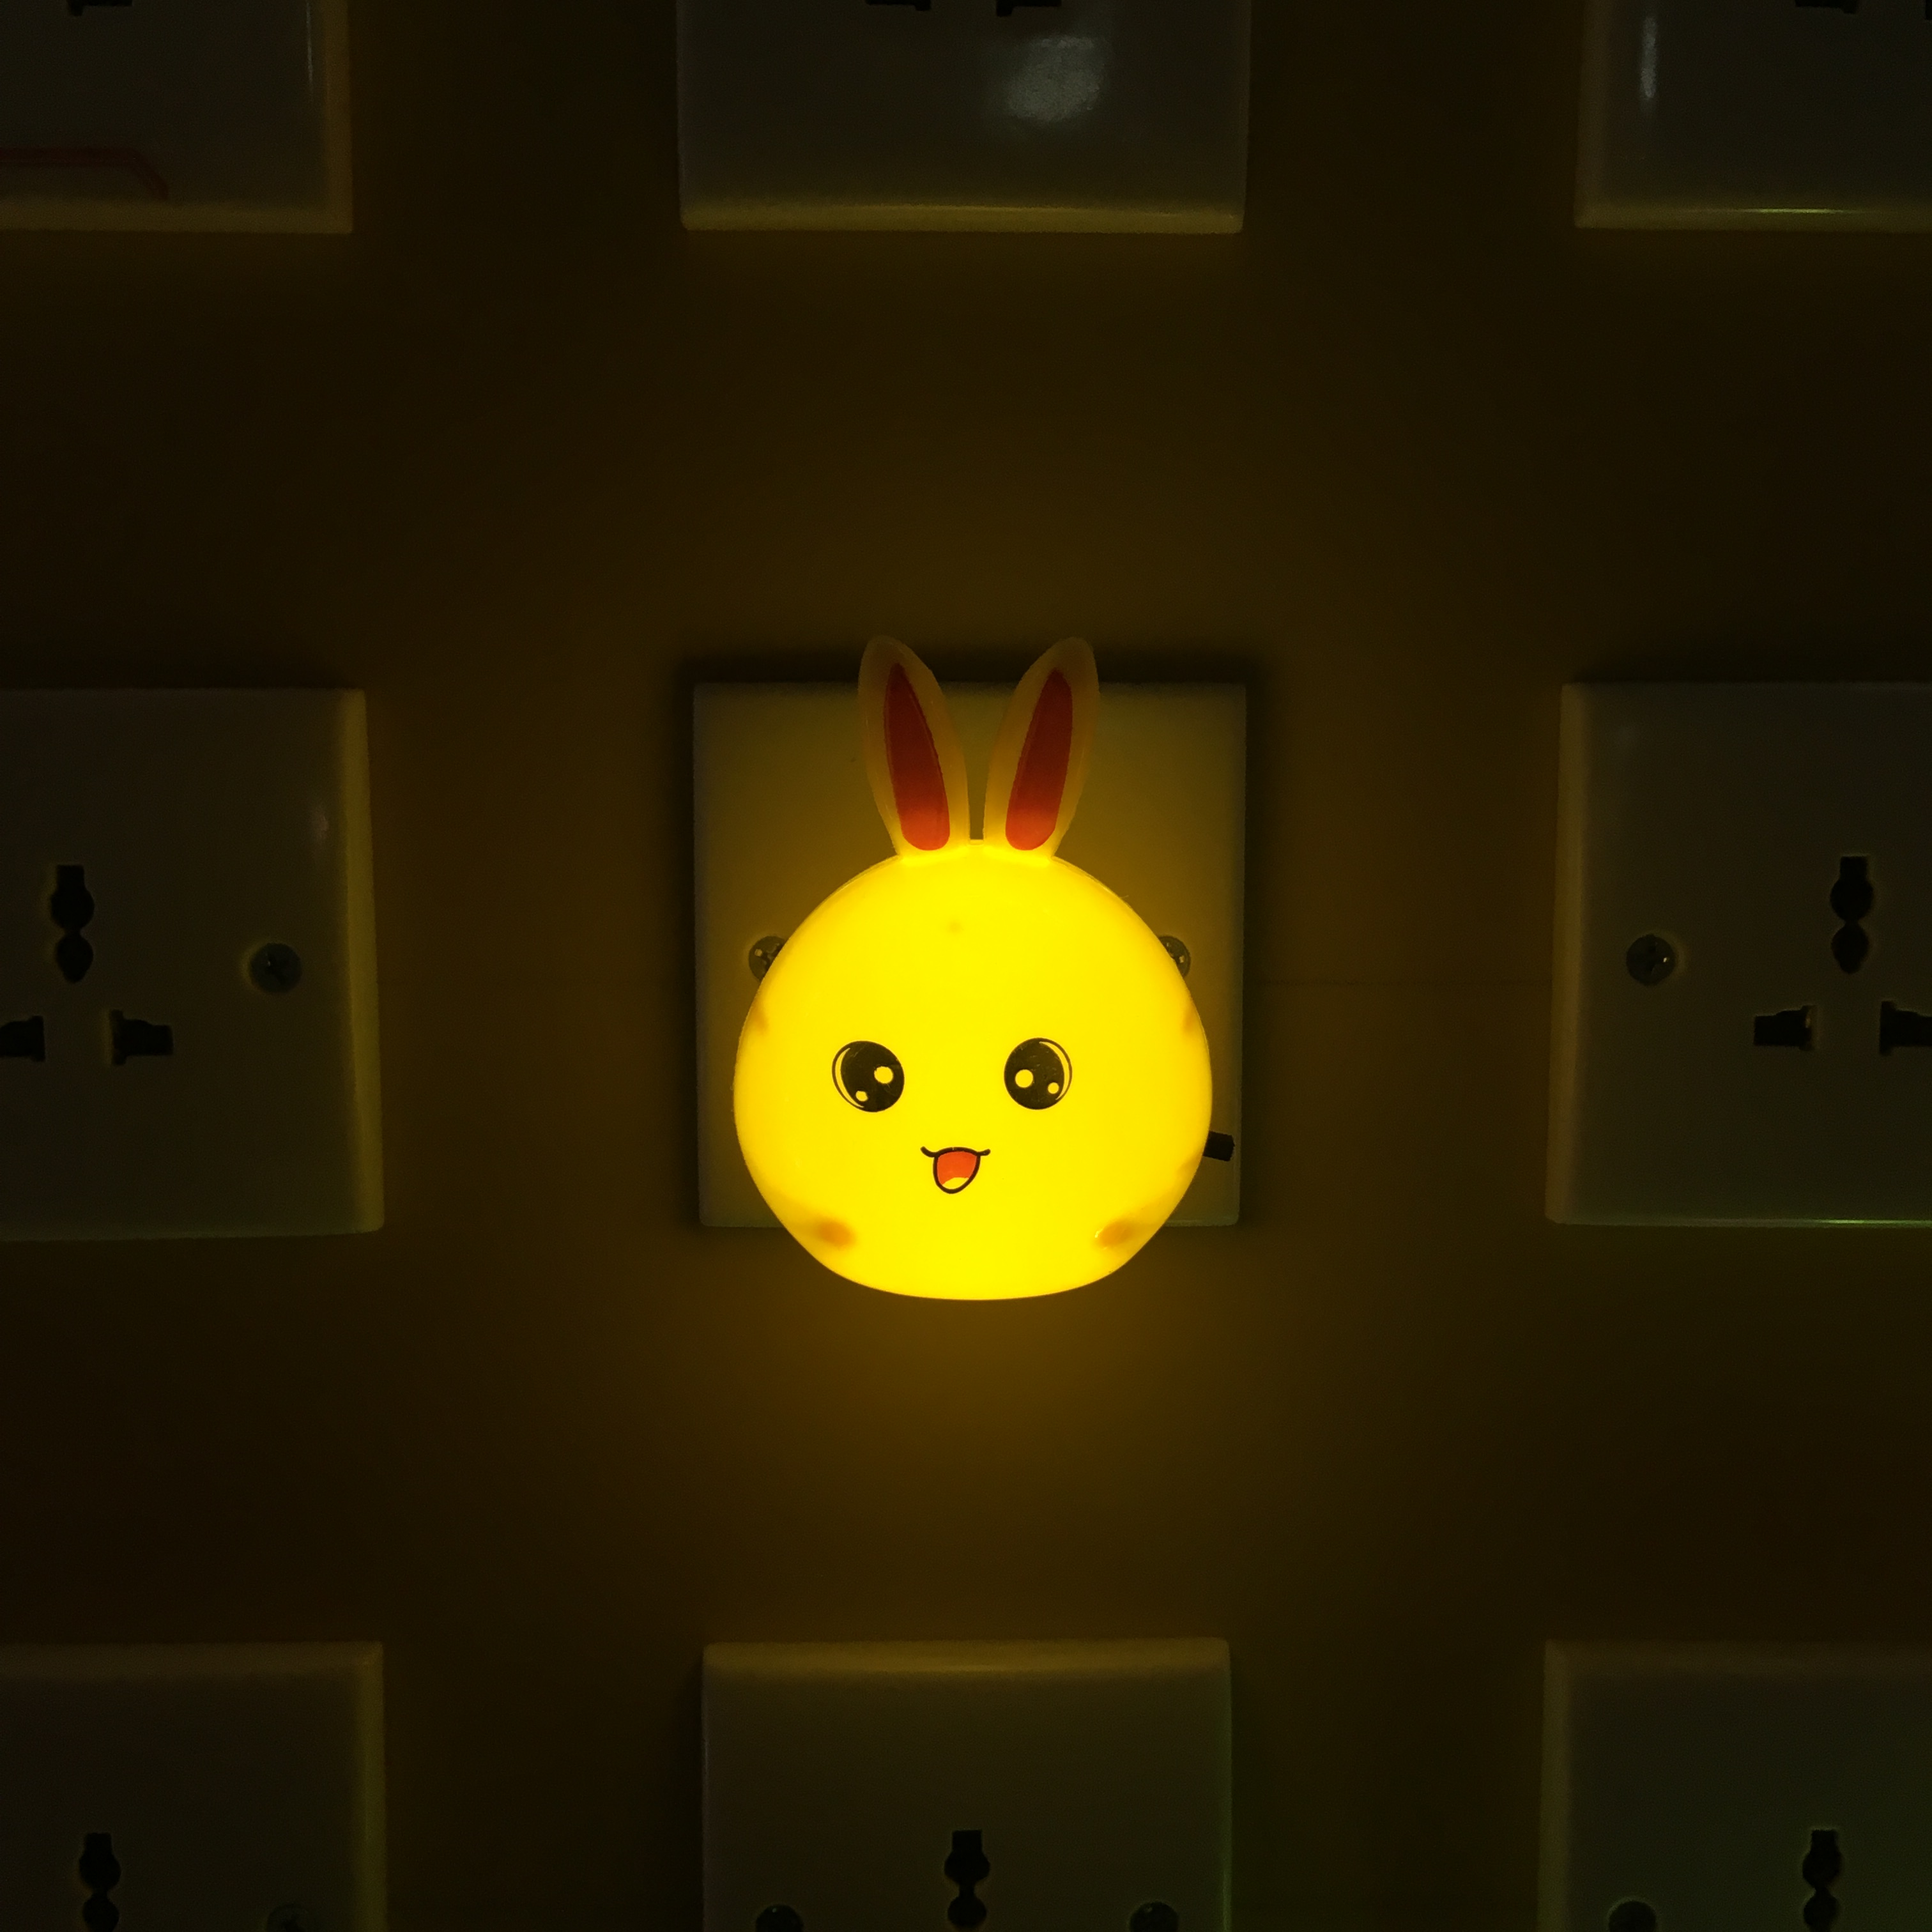 W103 Oval long-eared rabbit shape 4SMD mini switch plug in night light with 0.6W AC 110V 220V